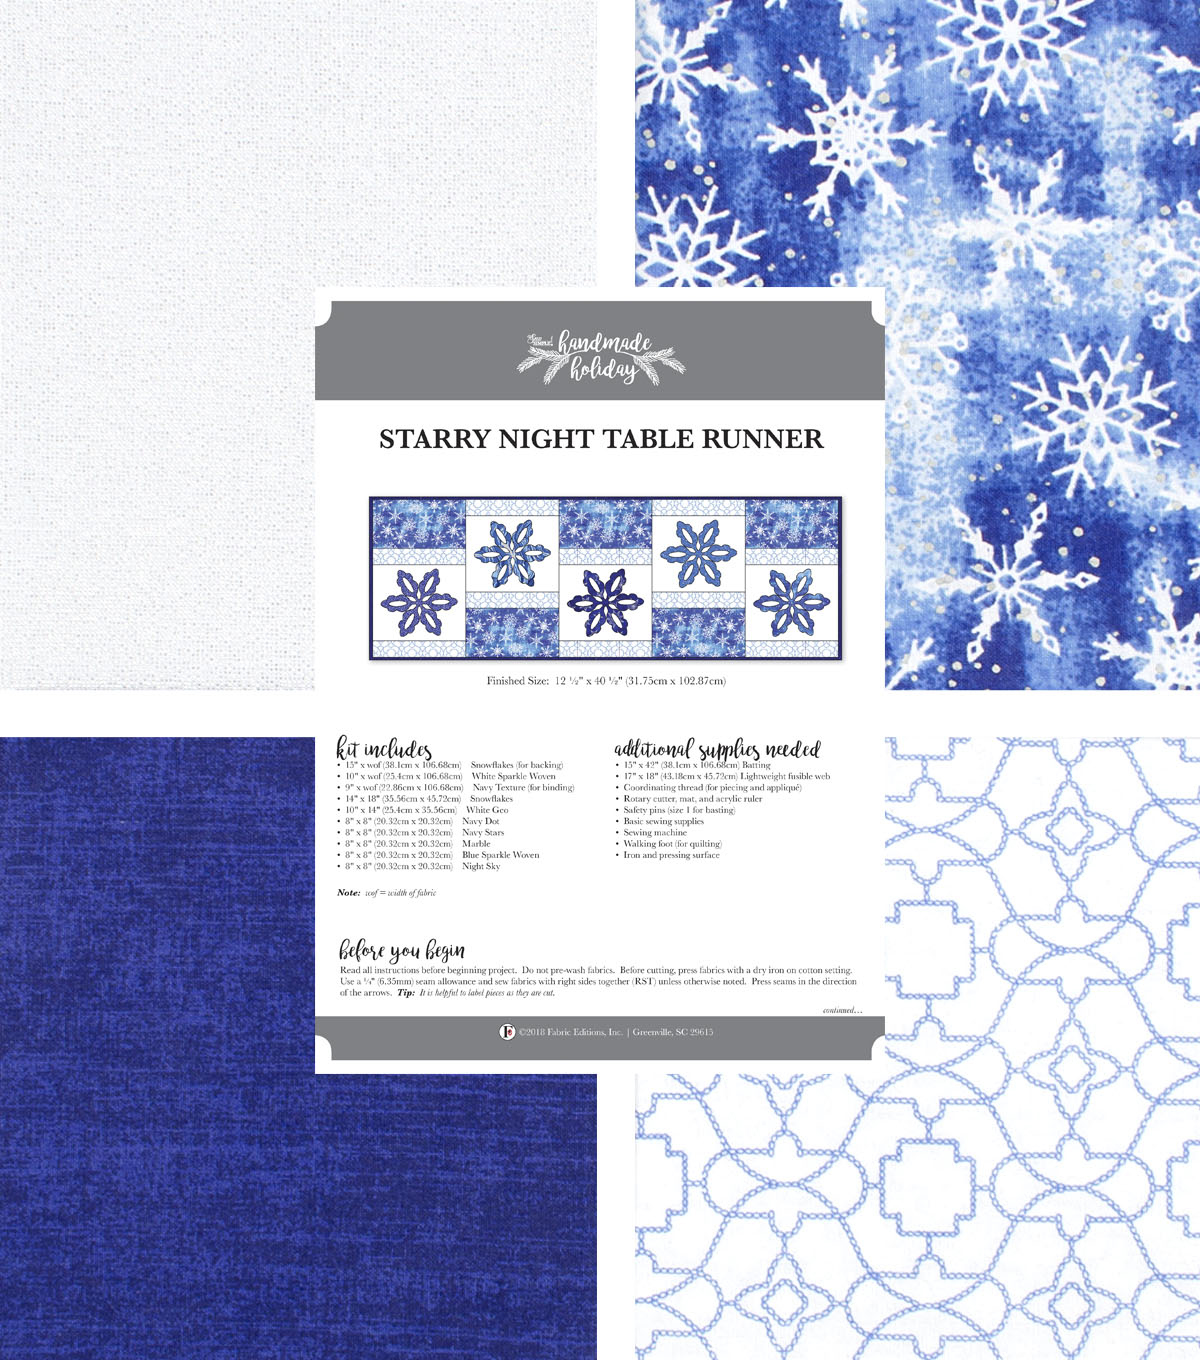 800e56af6 It's Sew Simple Handmade Holiday Starry Night Table Runner Kit | JOANN